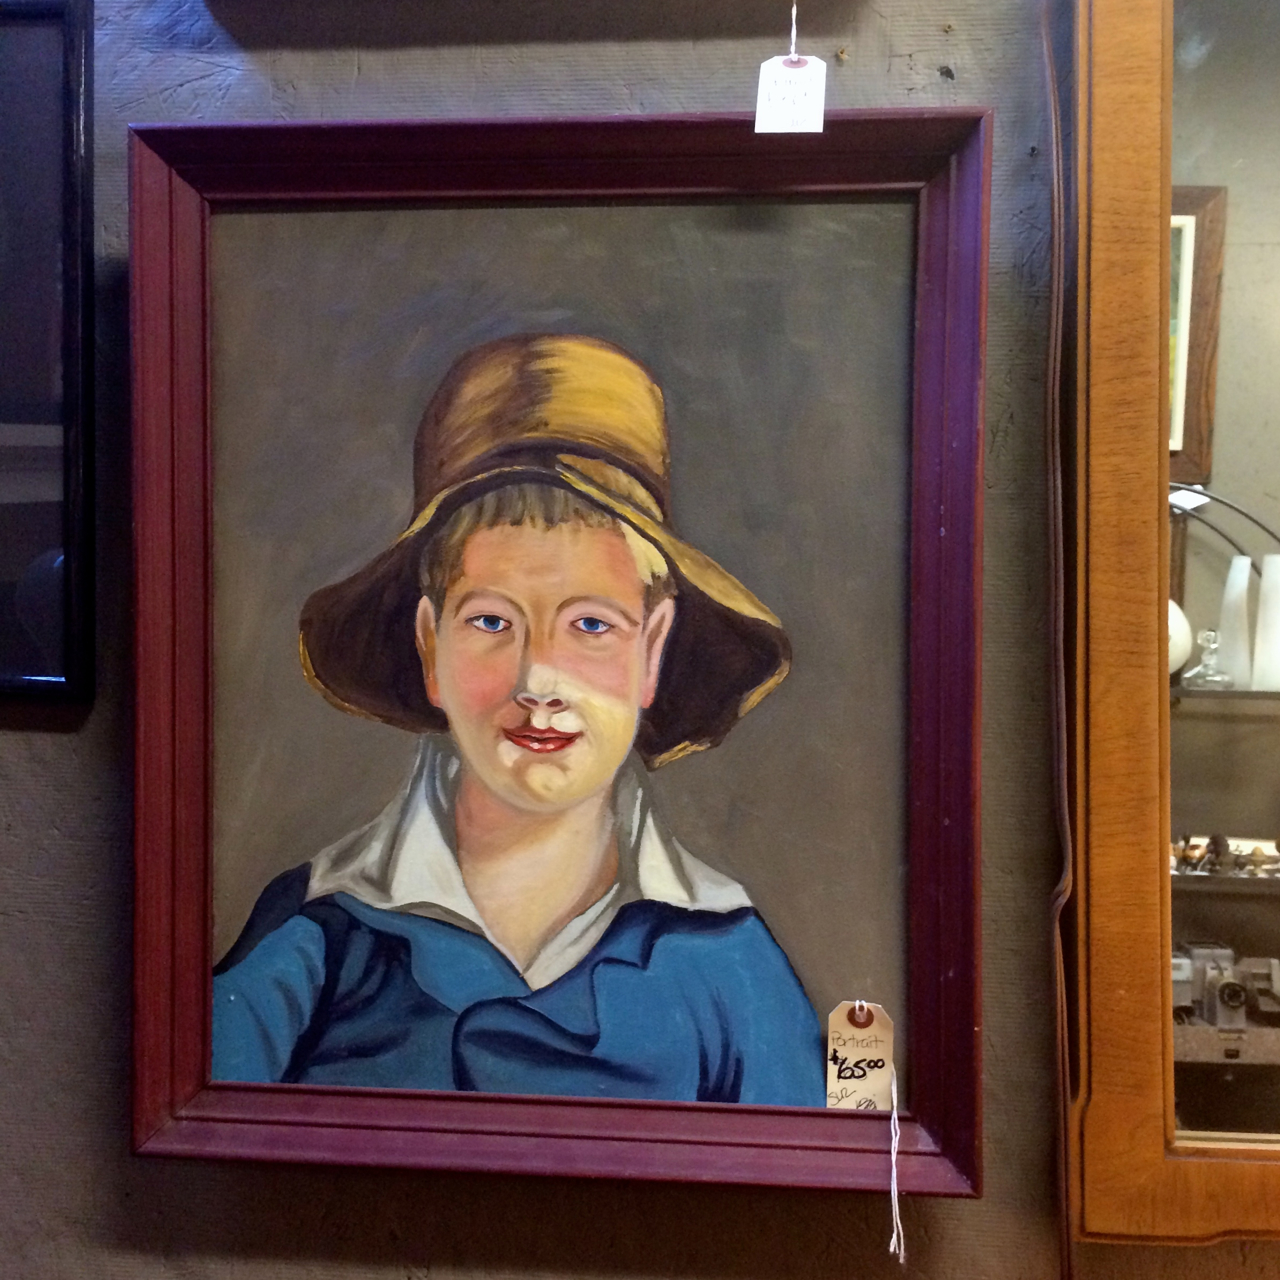 I have to say, this boy creeps me out a bit. That's terrible! But every time I return, I see him and am intrigued. I think he would make an interesting addition to a gallery wall.